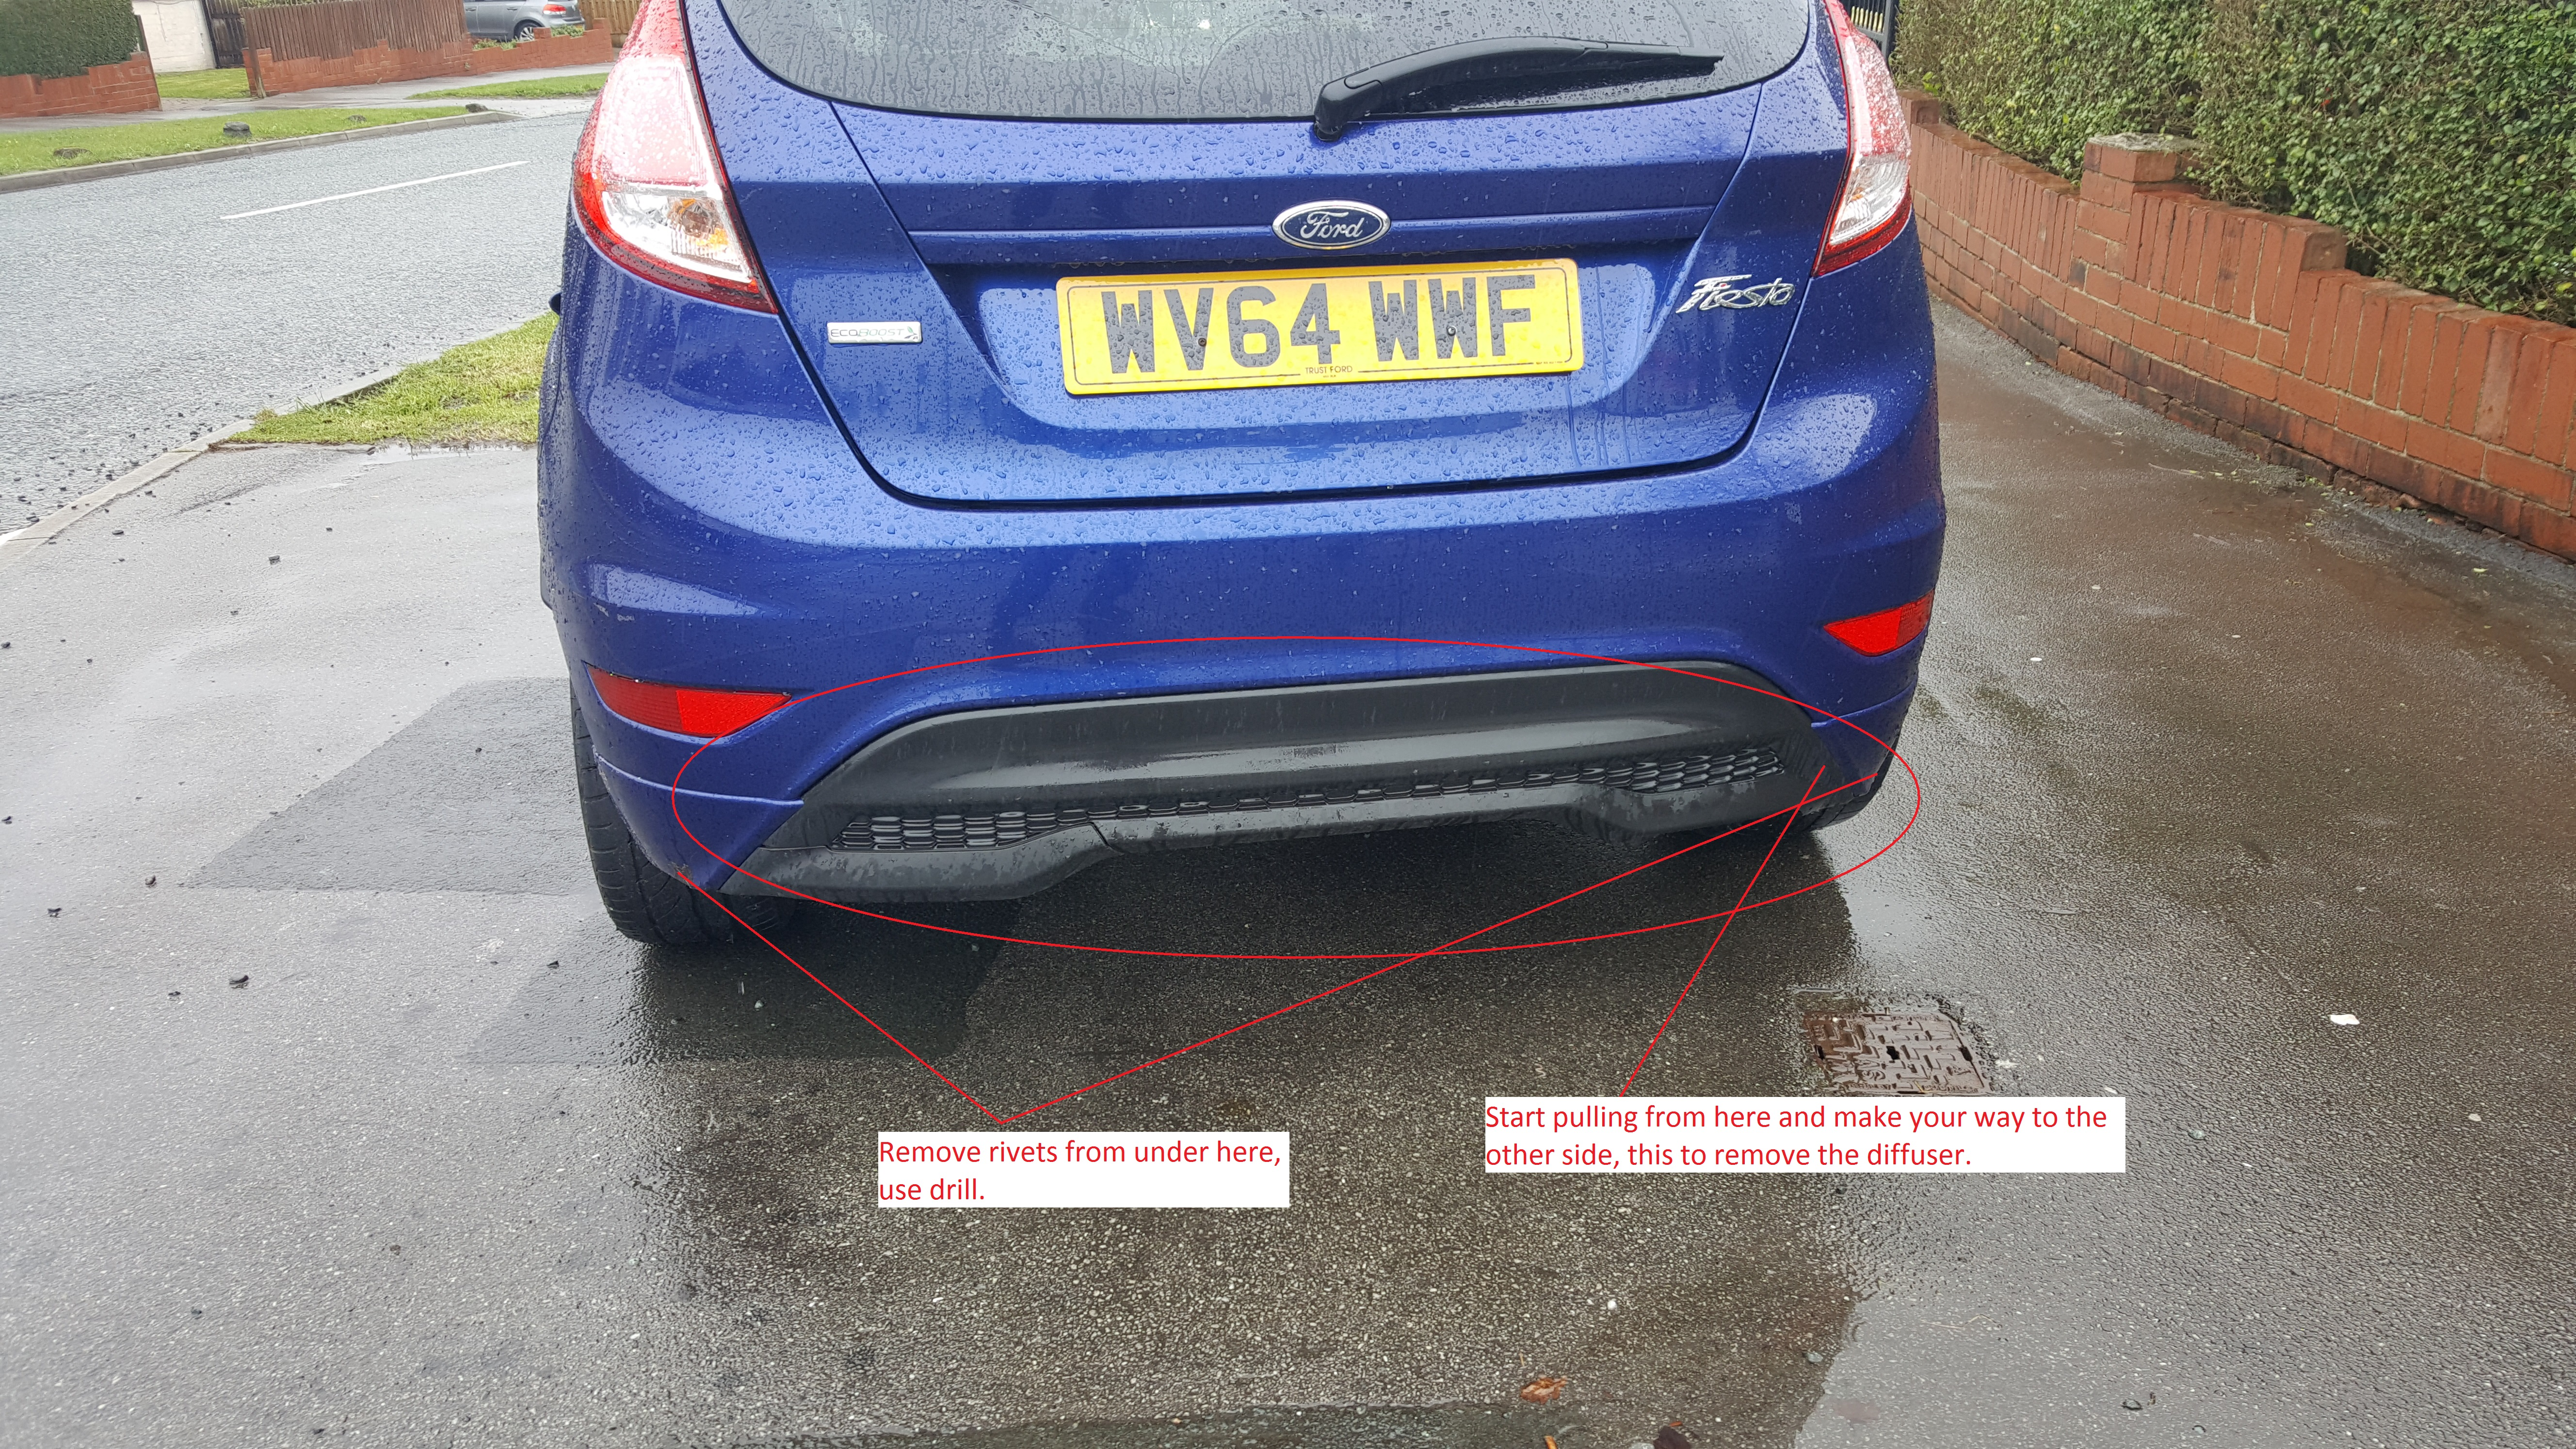 Ford Fiesta Mk7 Rear Diffuser For My Zetec Ford Fiesta Club Ford Owners Club Ford Forums